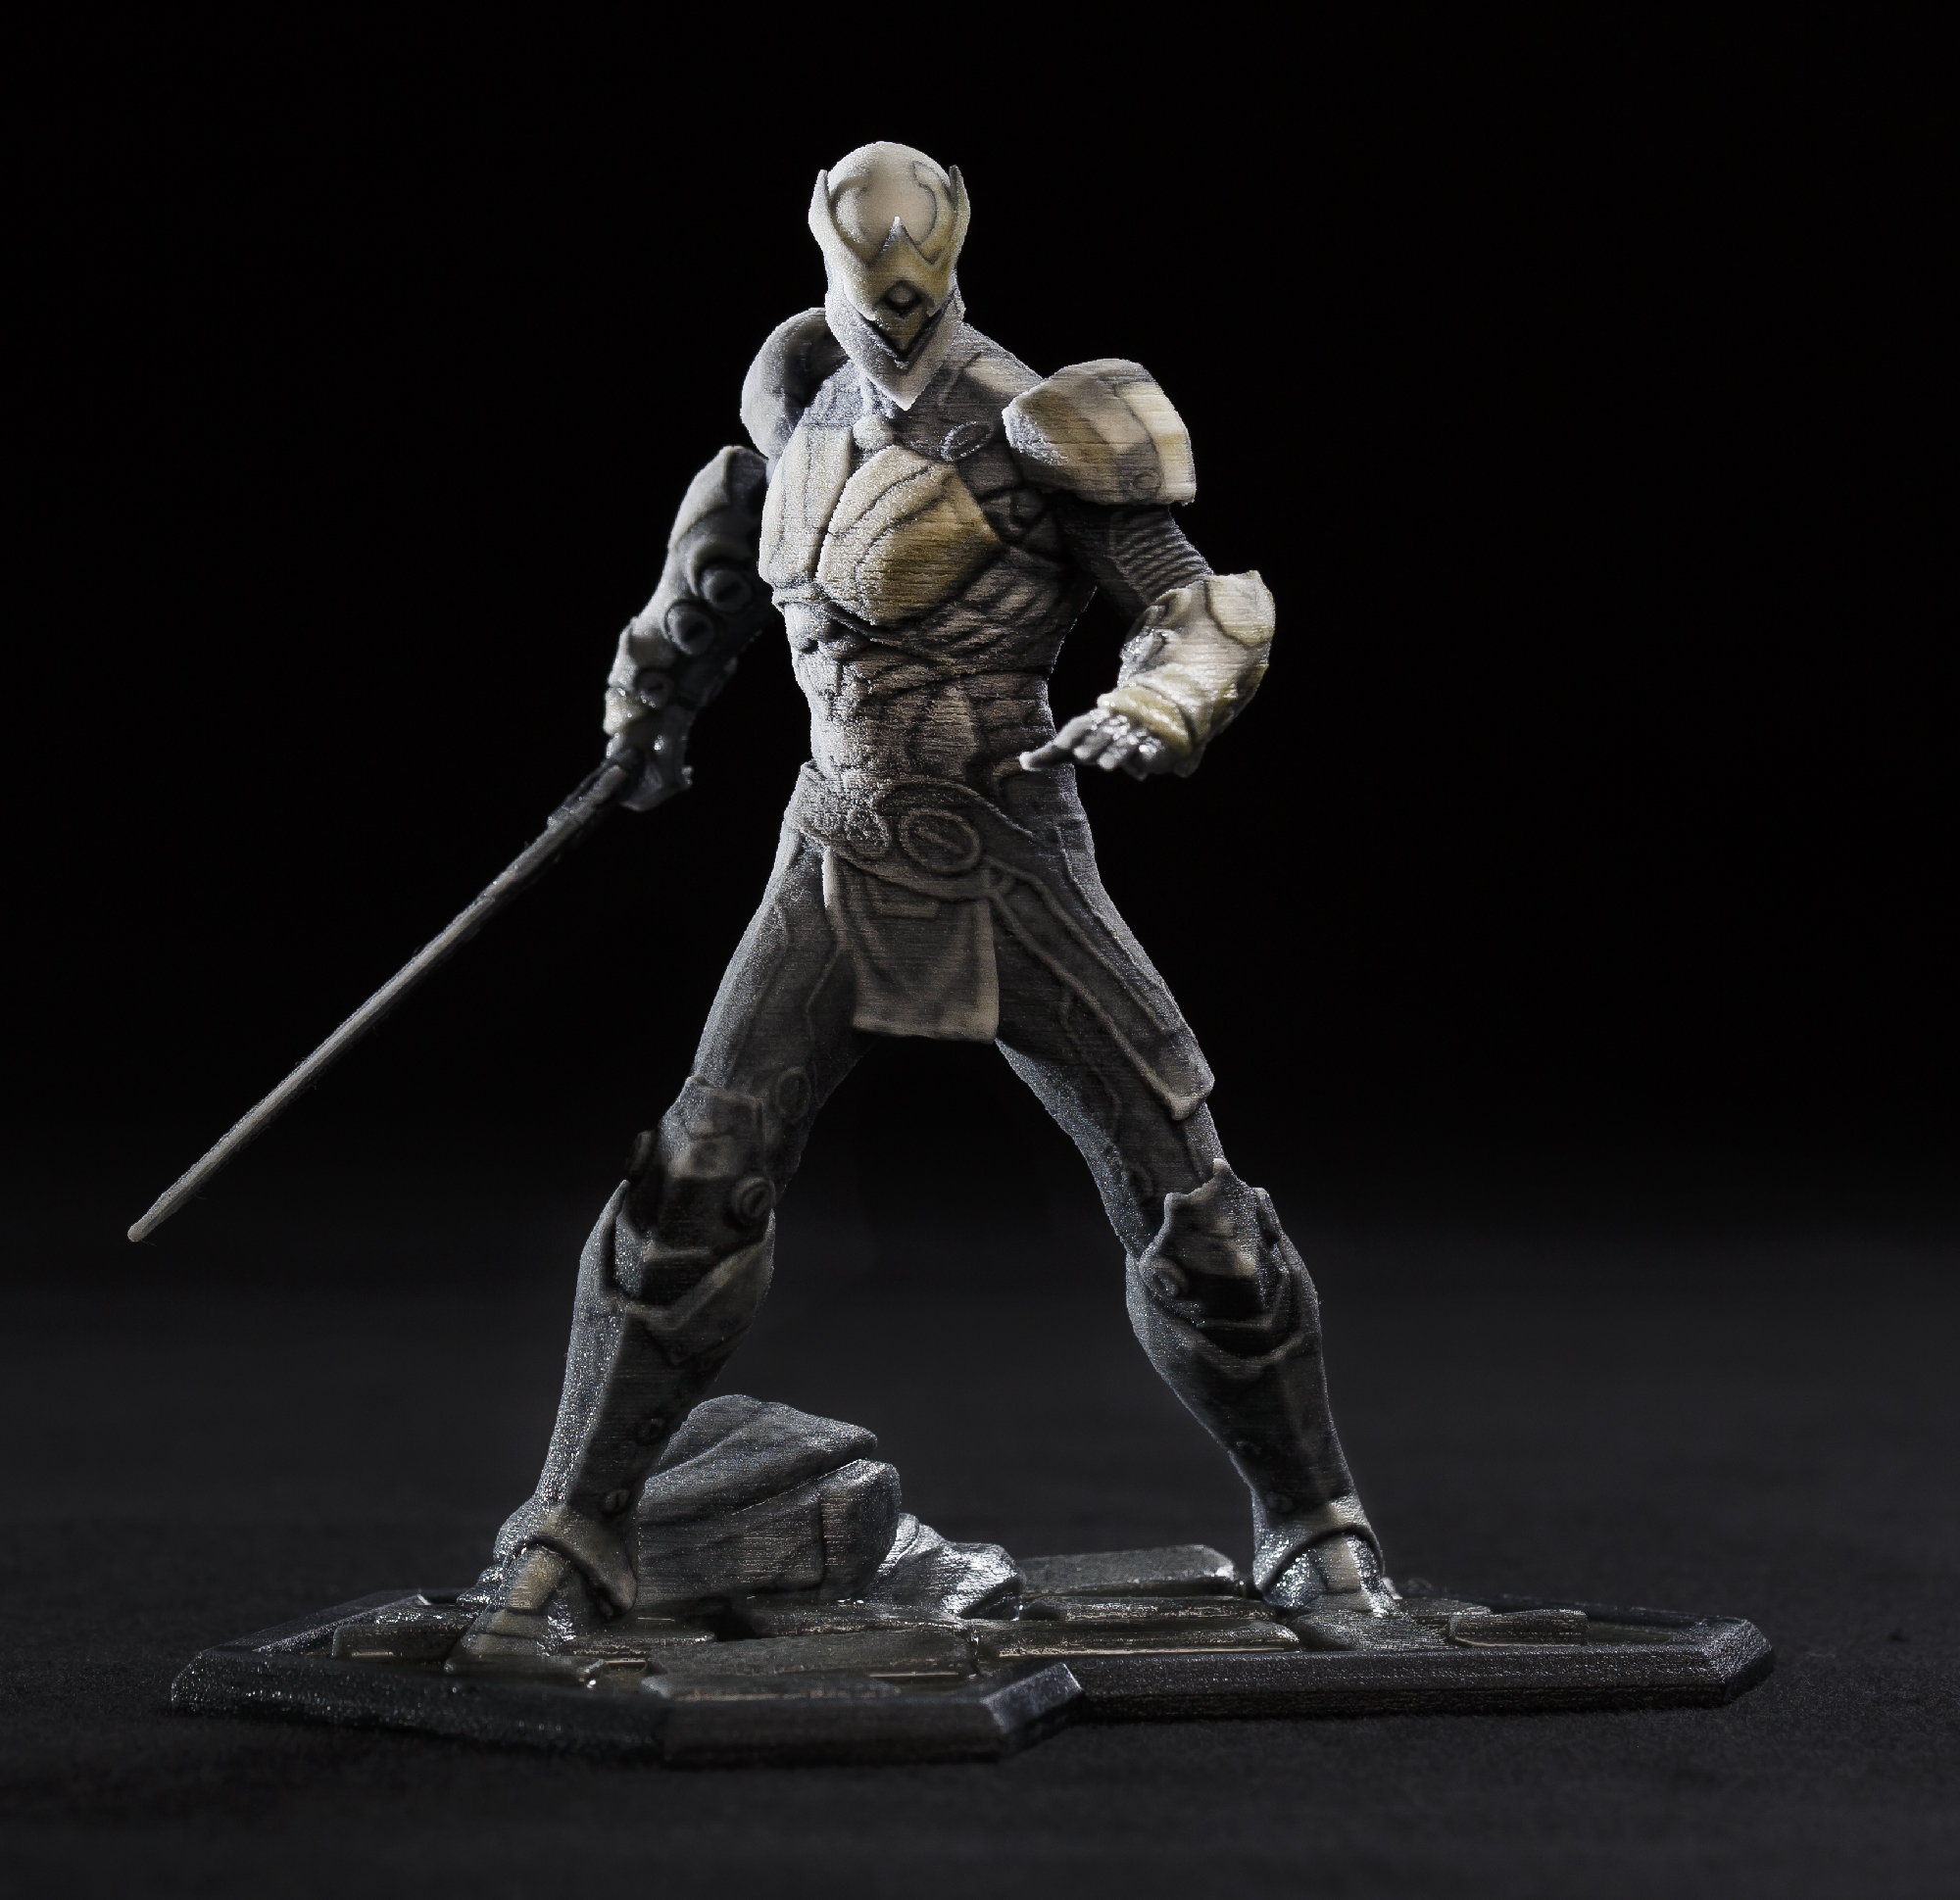 Chair Announces New Series Of Infinity Blade Collectibles